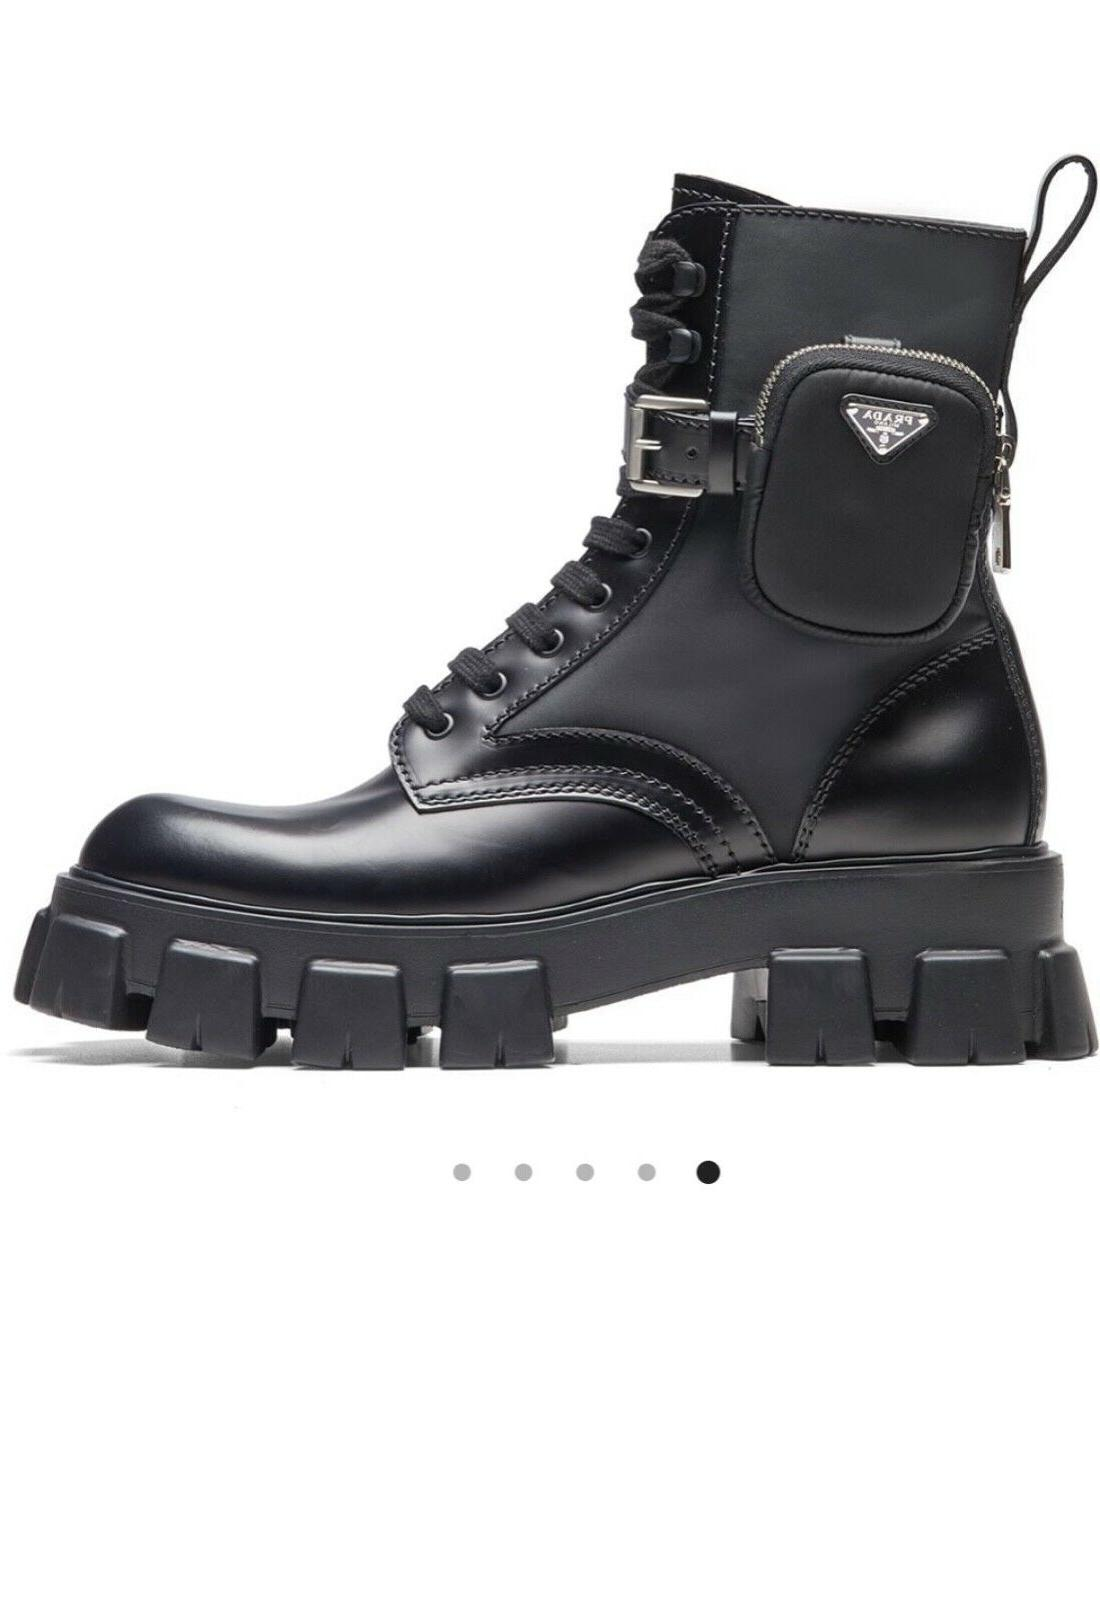 black combat boots with pouch size 38